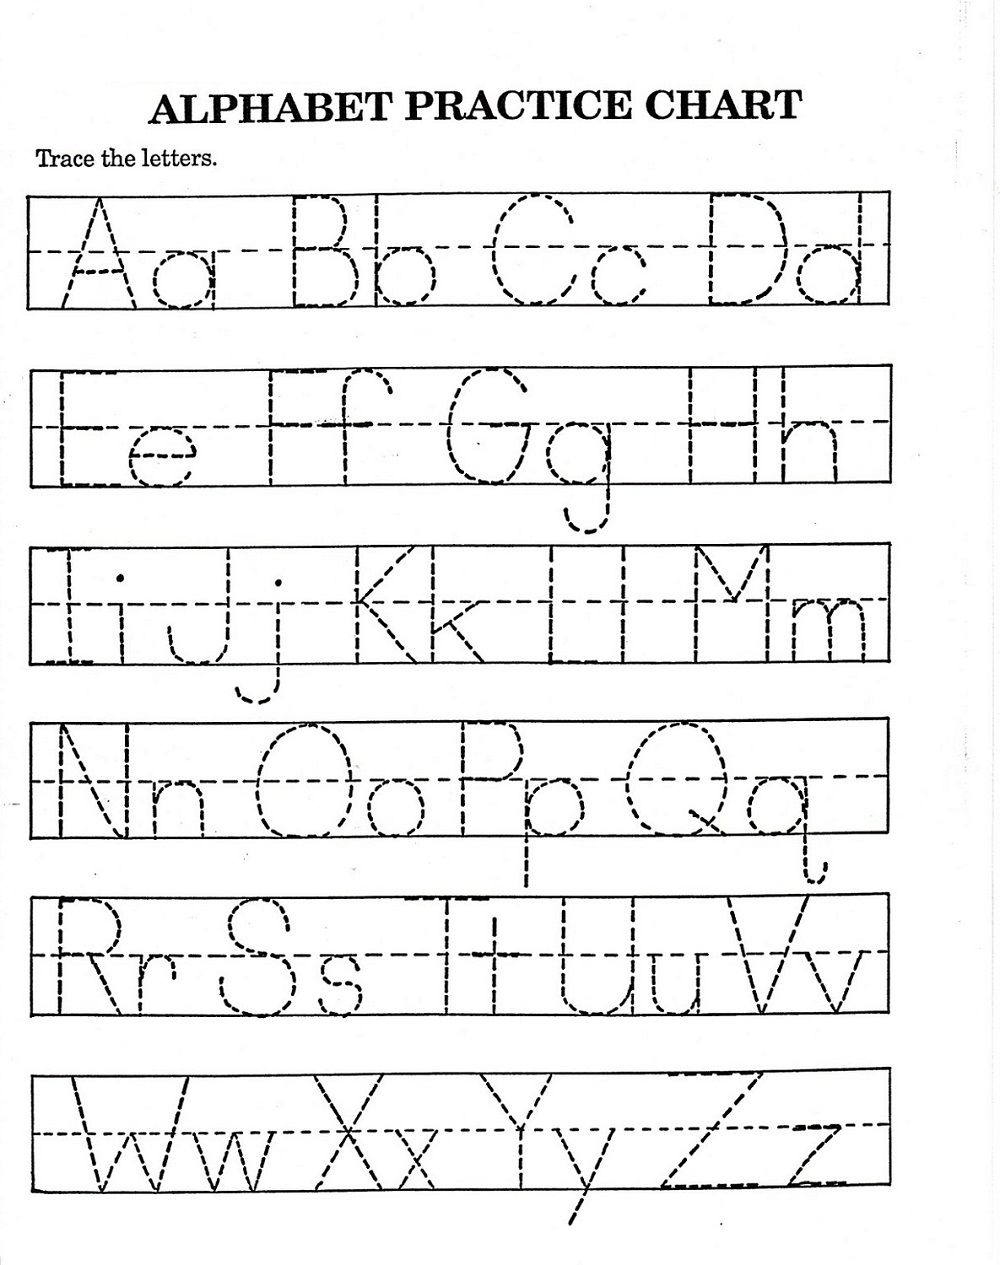 Traceable Alphabet Worksheets A-Z | Activity Shelter